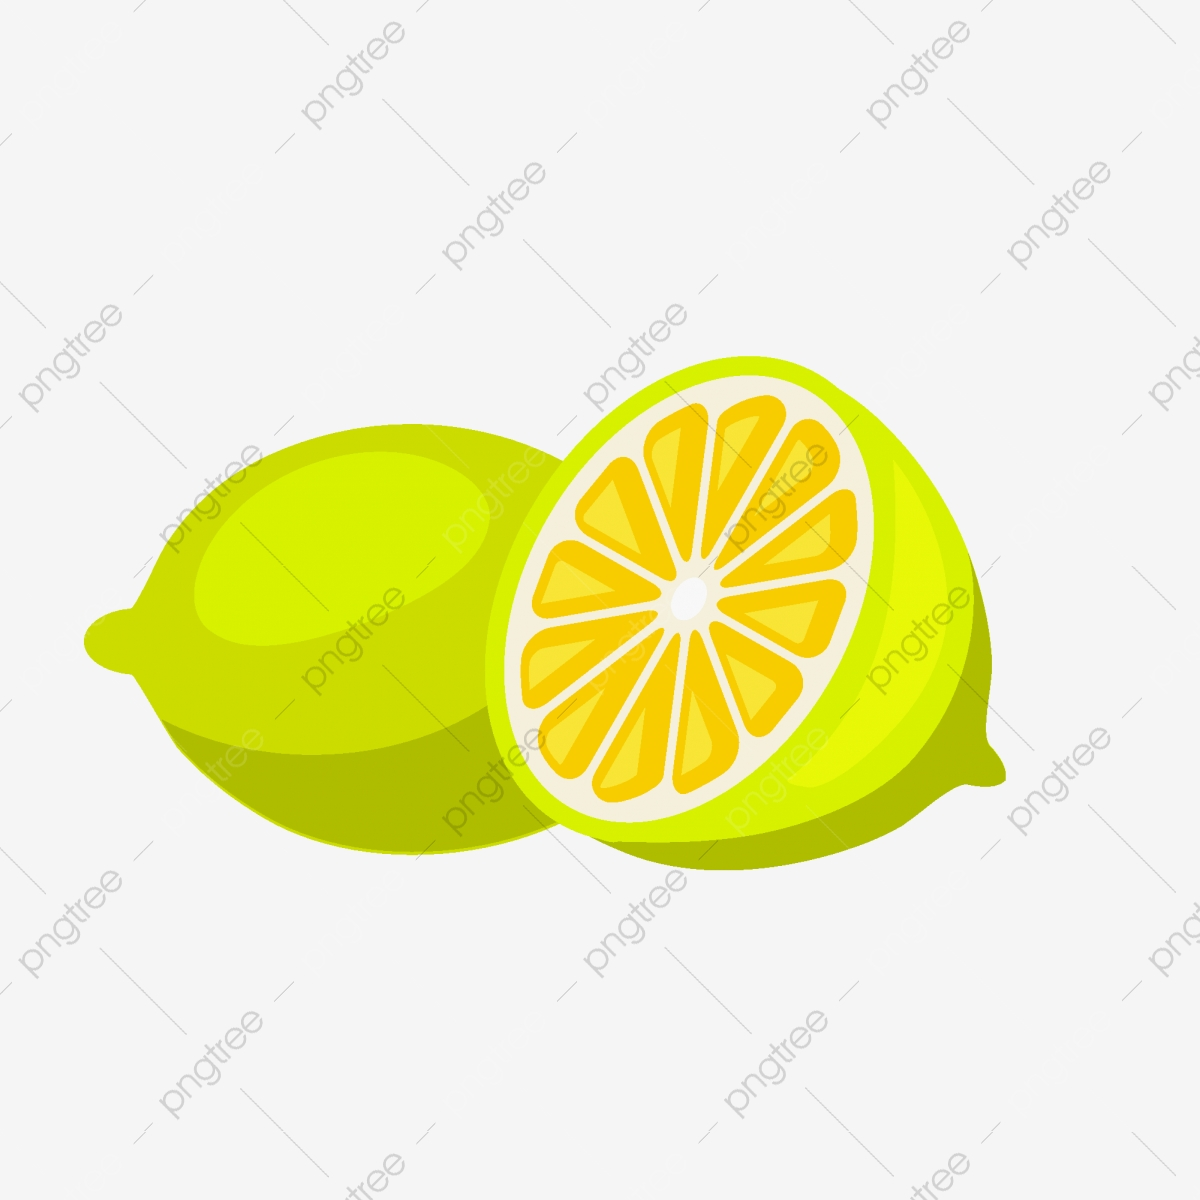 Fresh Lime Hd Photos, Lemon, Lime, Fruit PNG Transparent.